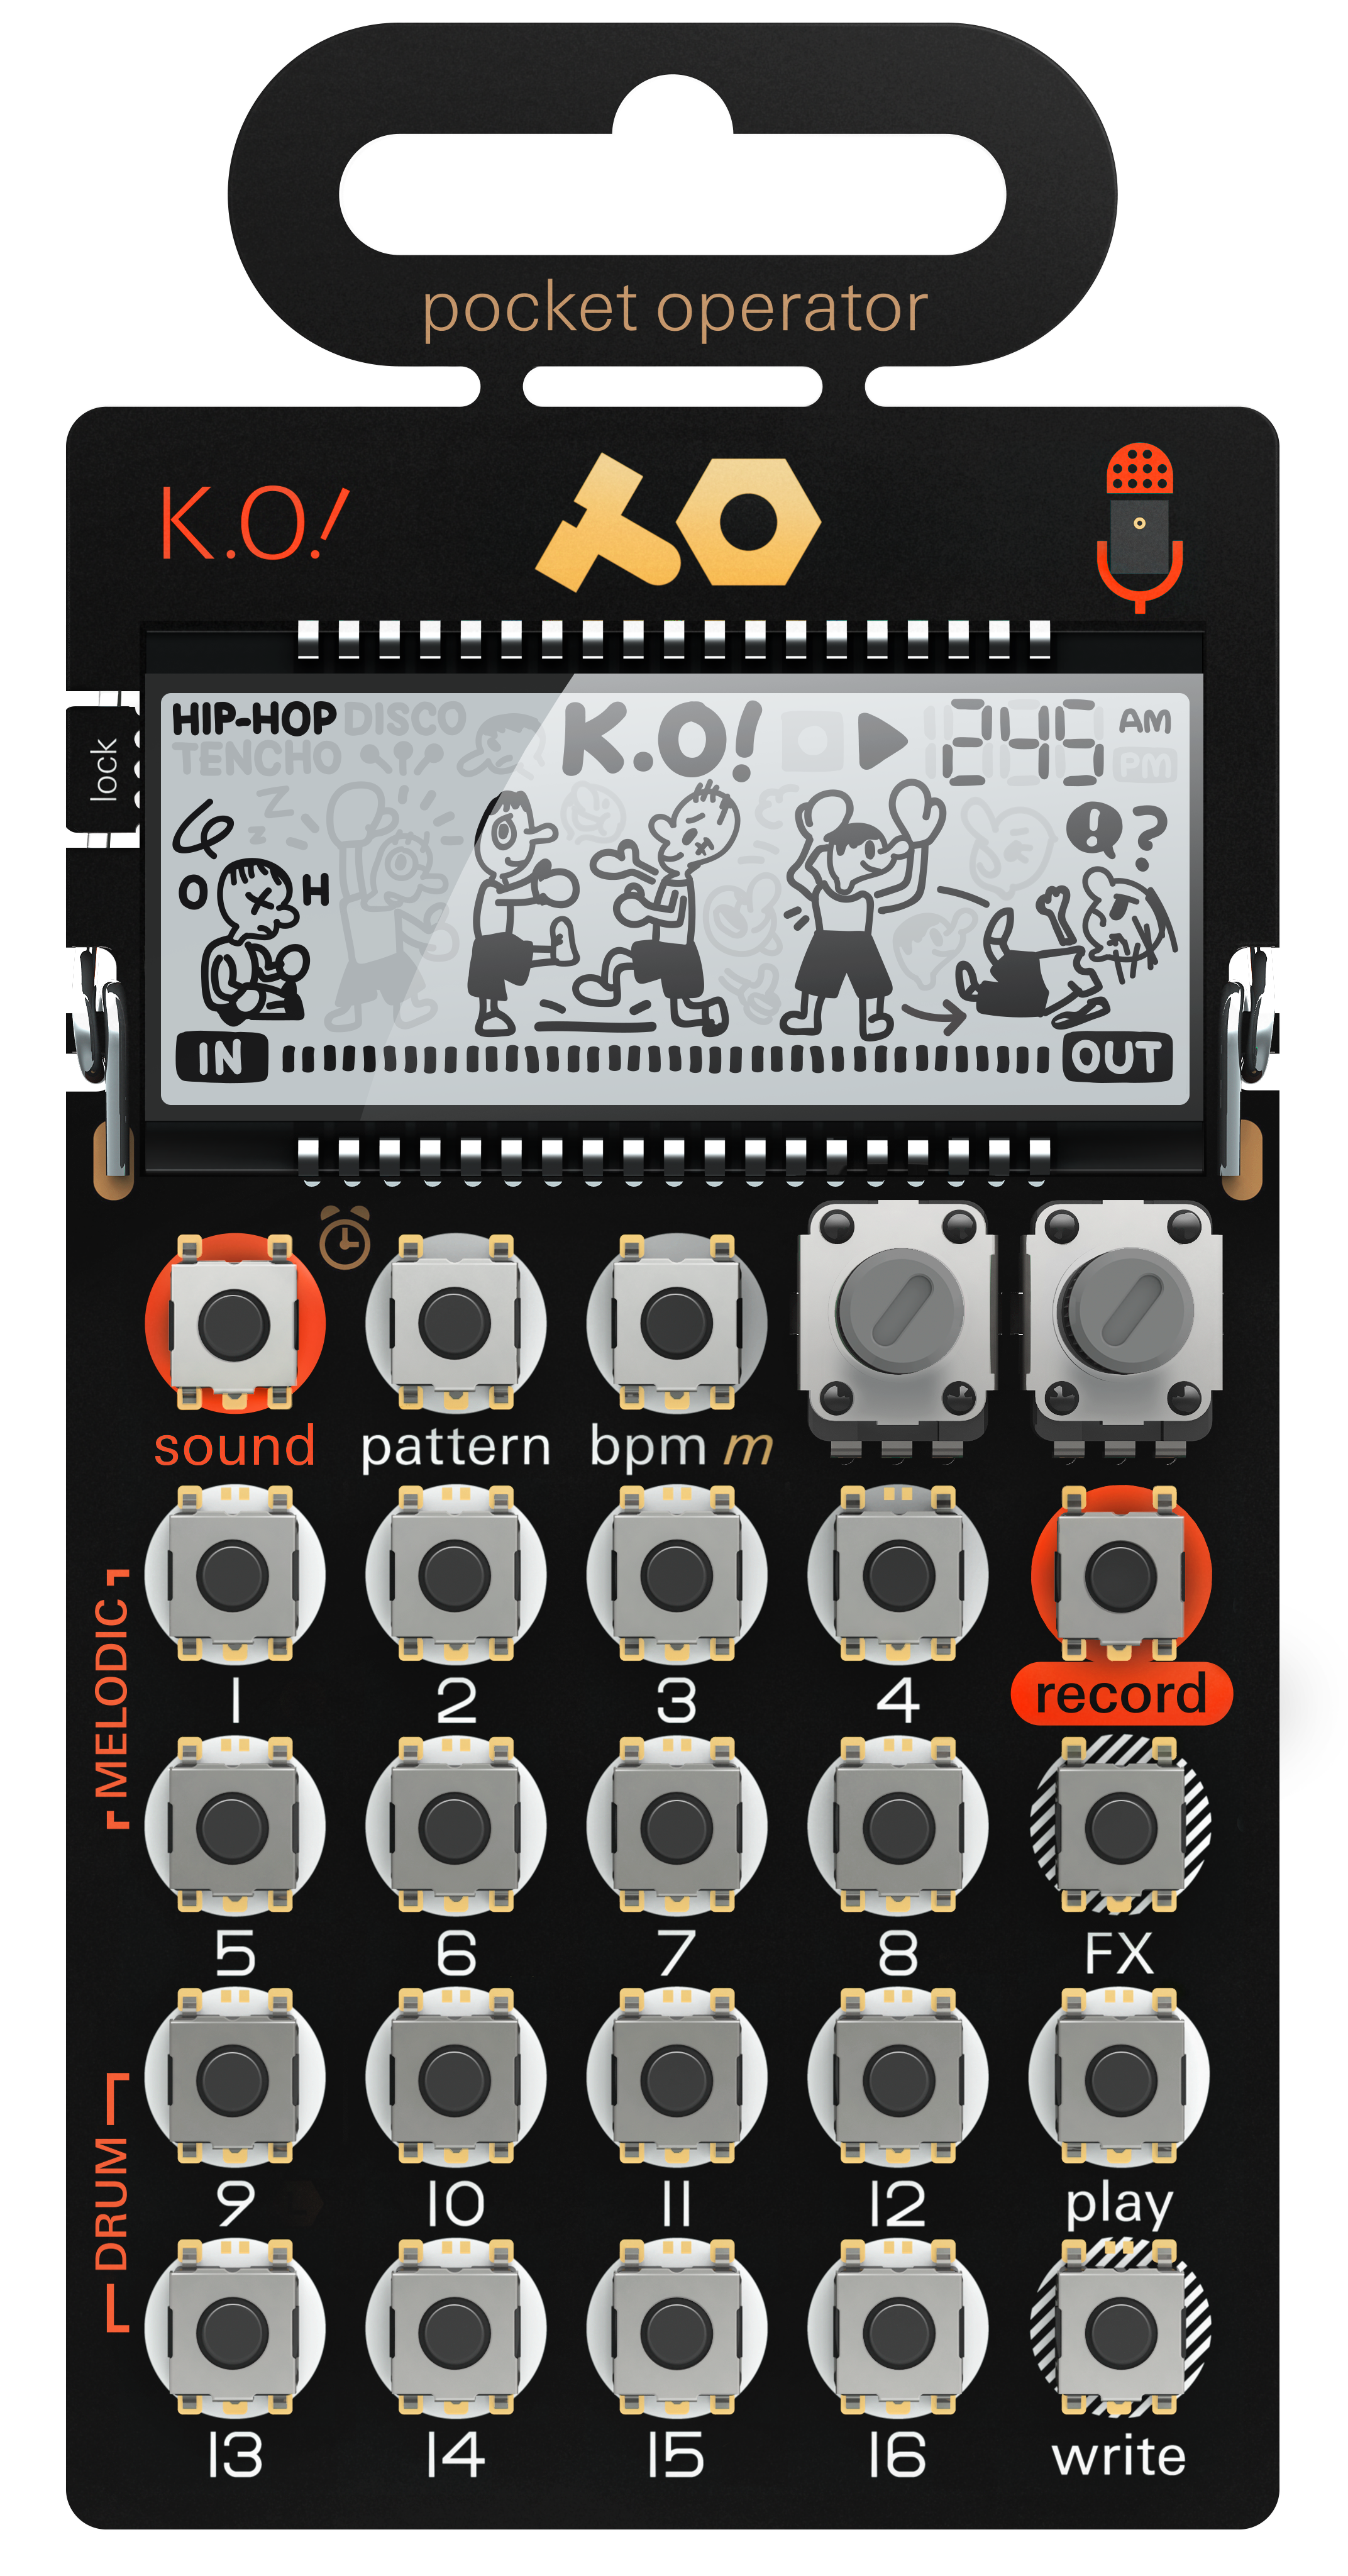 po-33_front